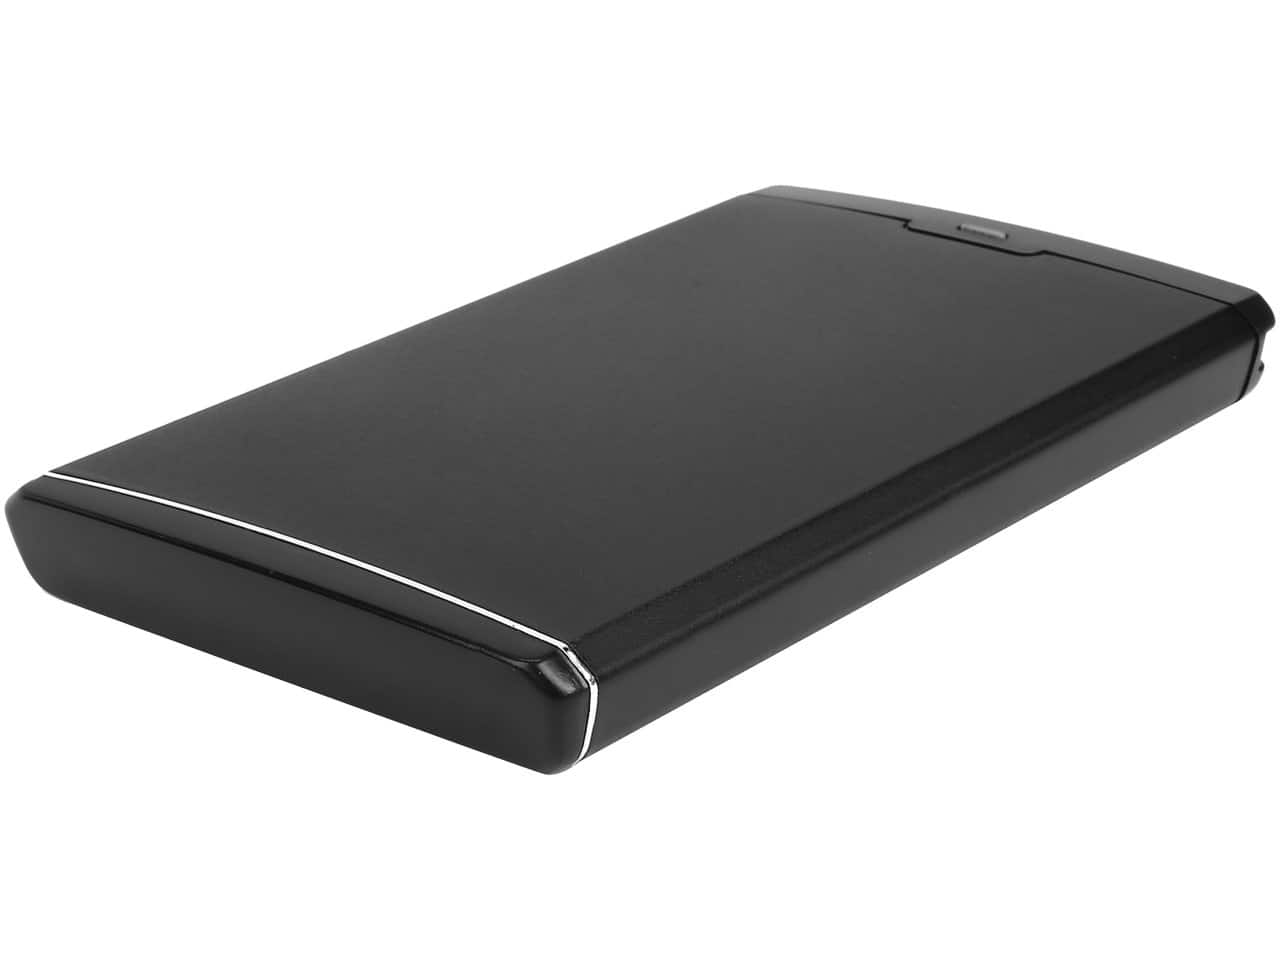 "Mediasonic ProBox 2.5"" USB 3.0 External Enclosure for SATA Hard Drives/SSDs with UASP Support (HDR-SU3) for $1.00 AR + S&H @ Newegg.com"